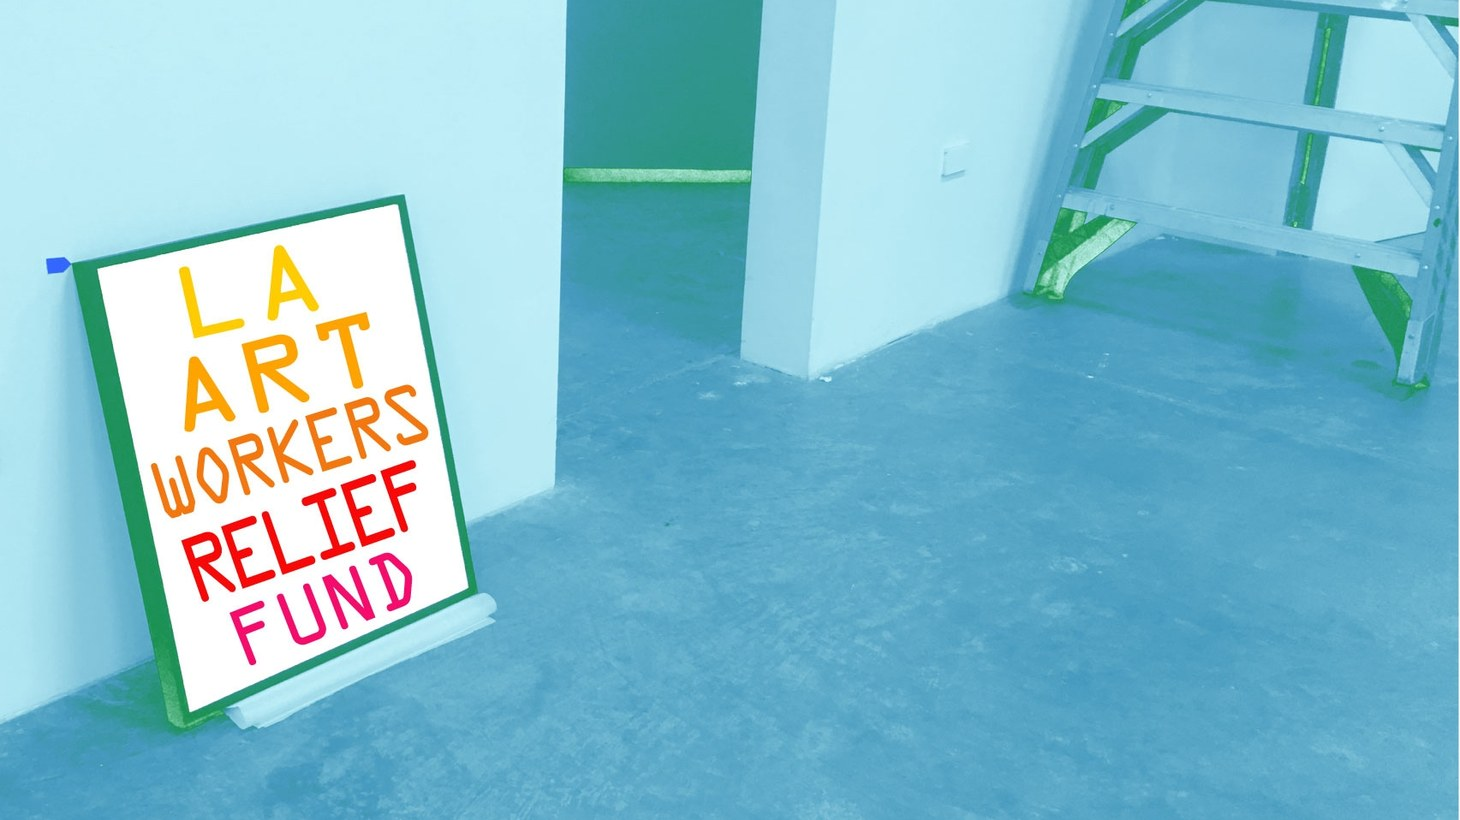 A new grassroots relief fund was initiated by art workers for art workers.